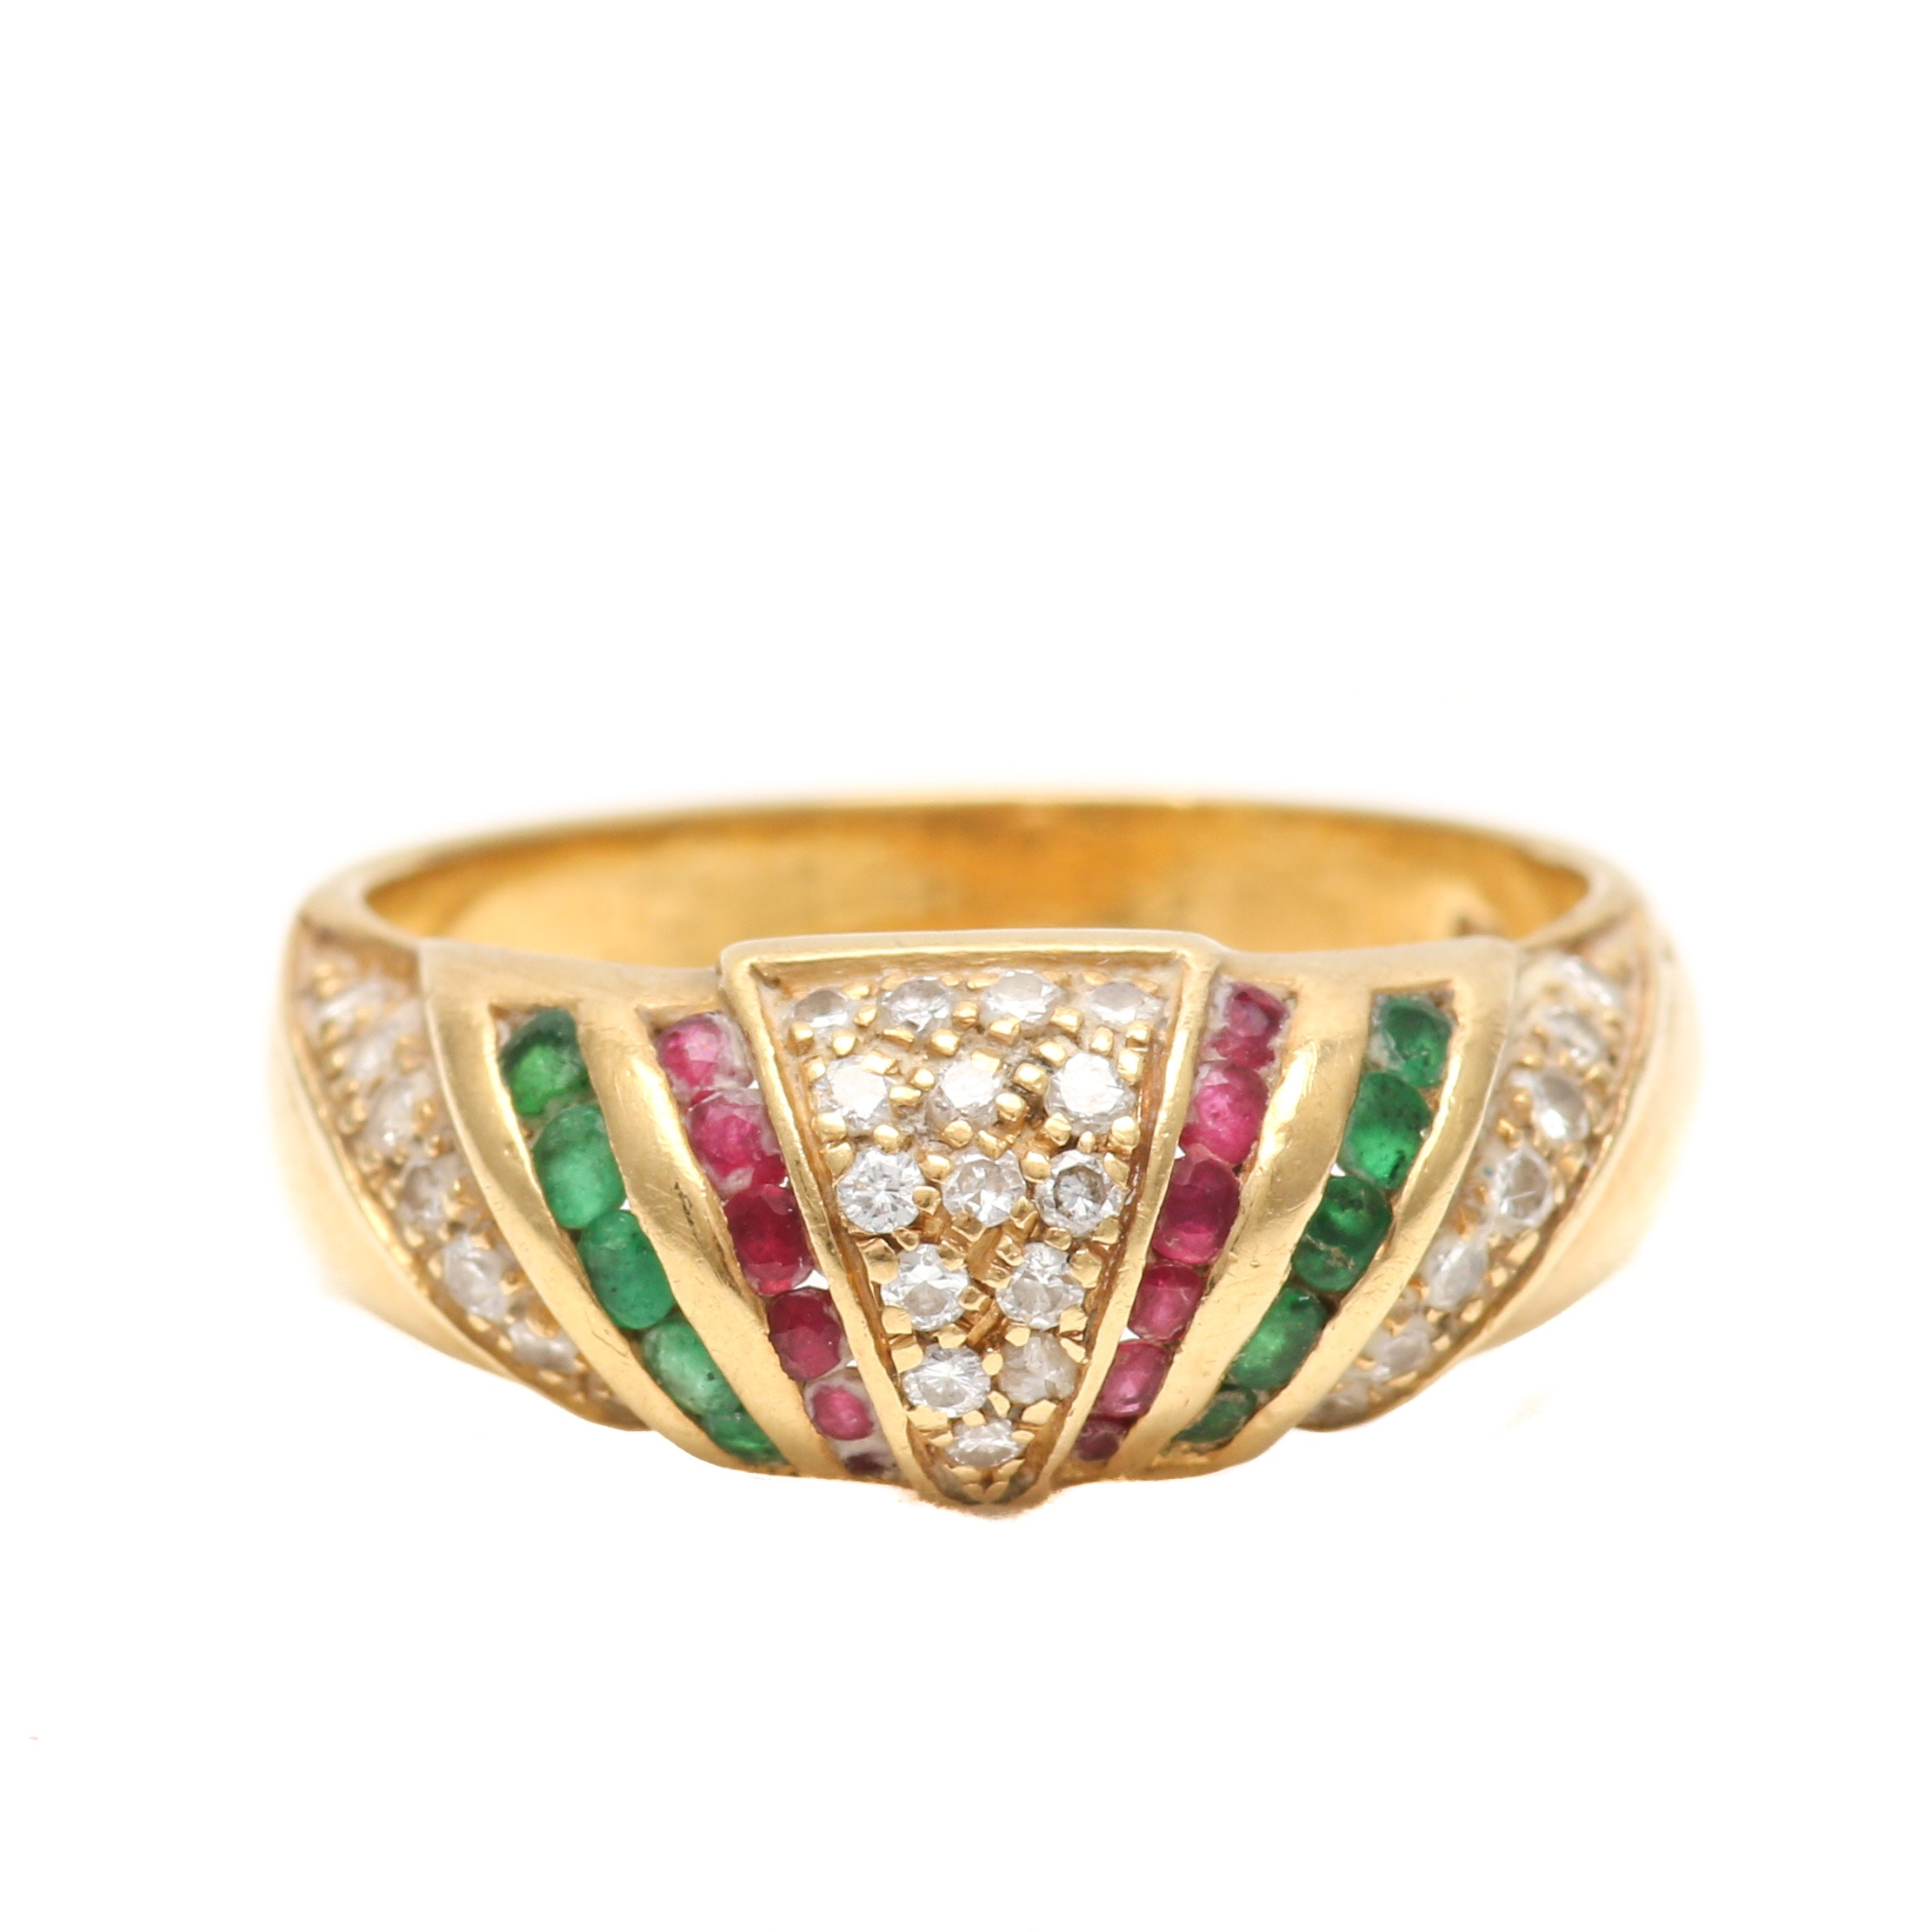 18K Yellow Gold Diamond, Ruby and Emerald Dome Ring